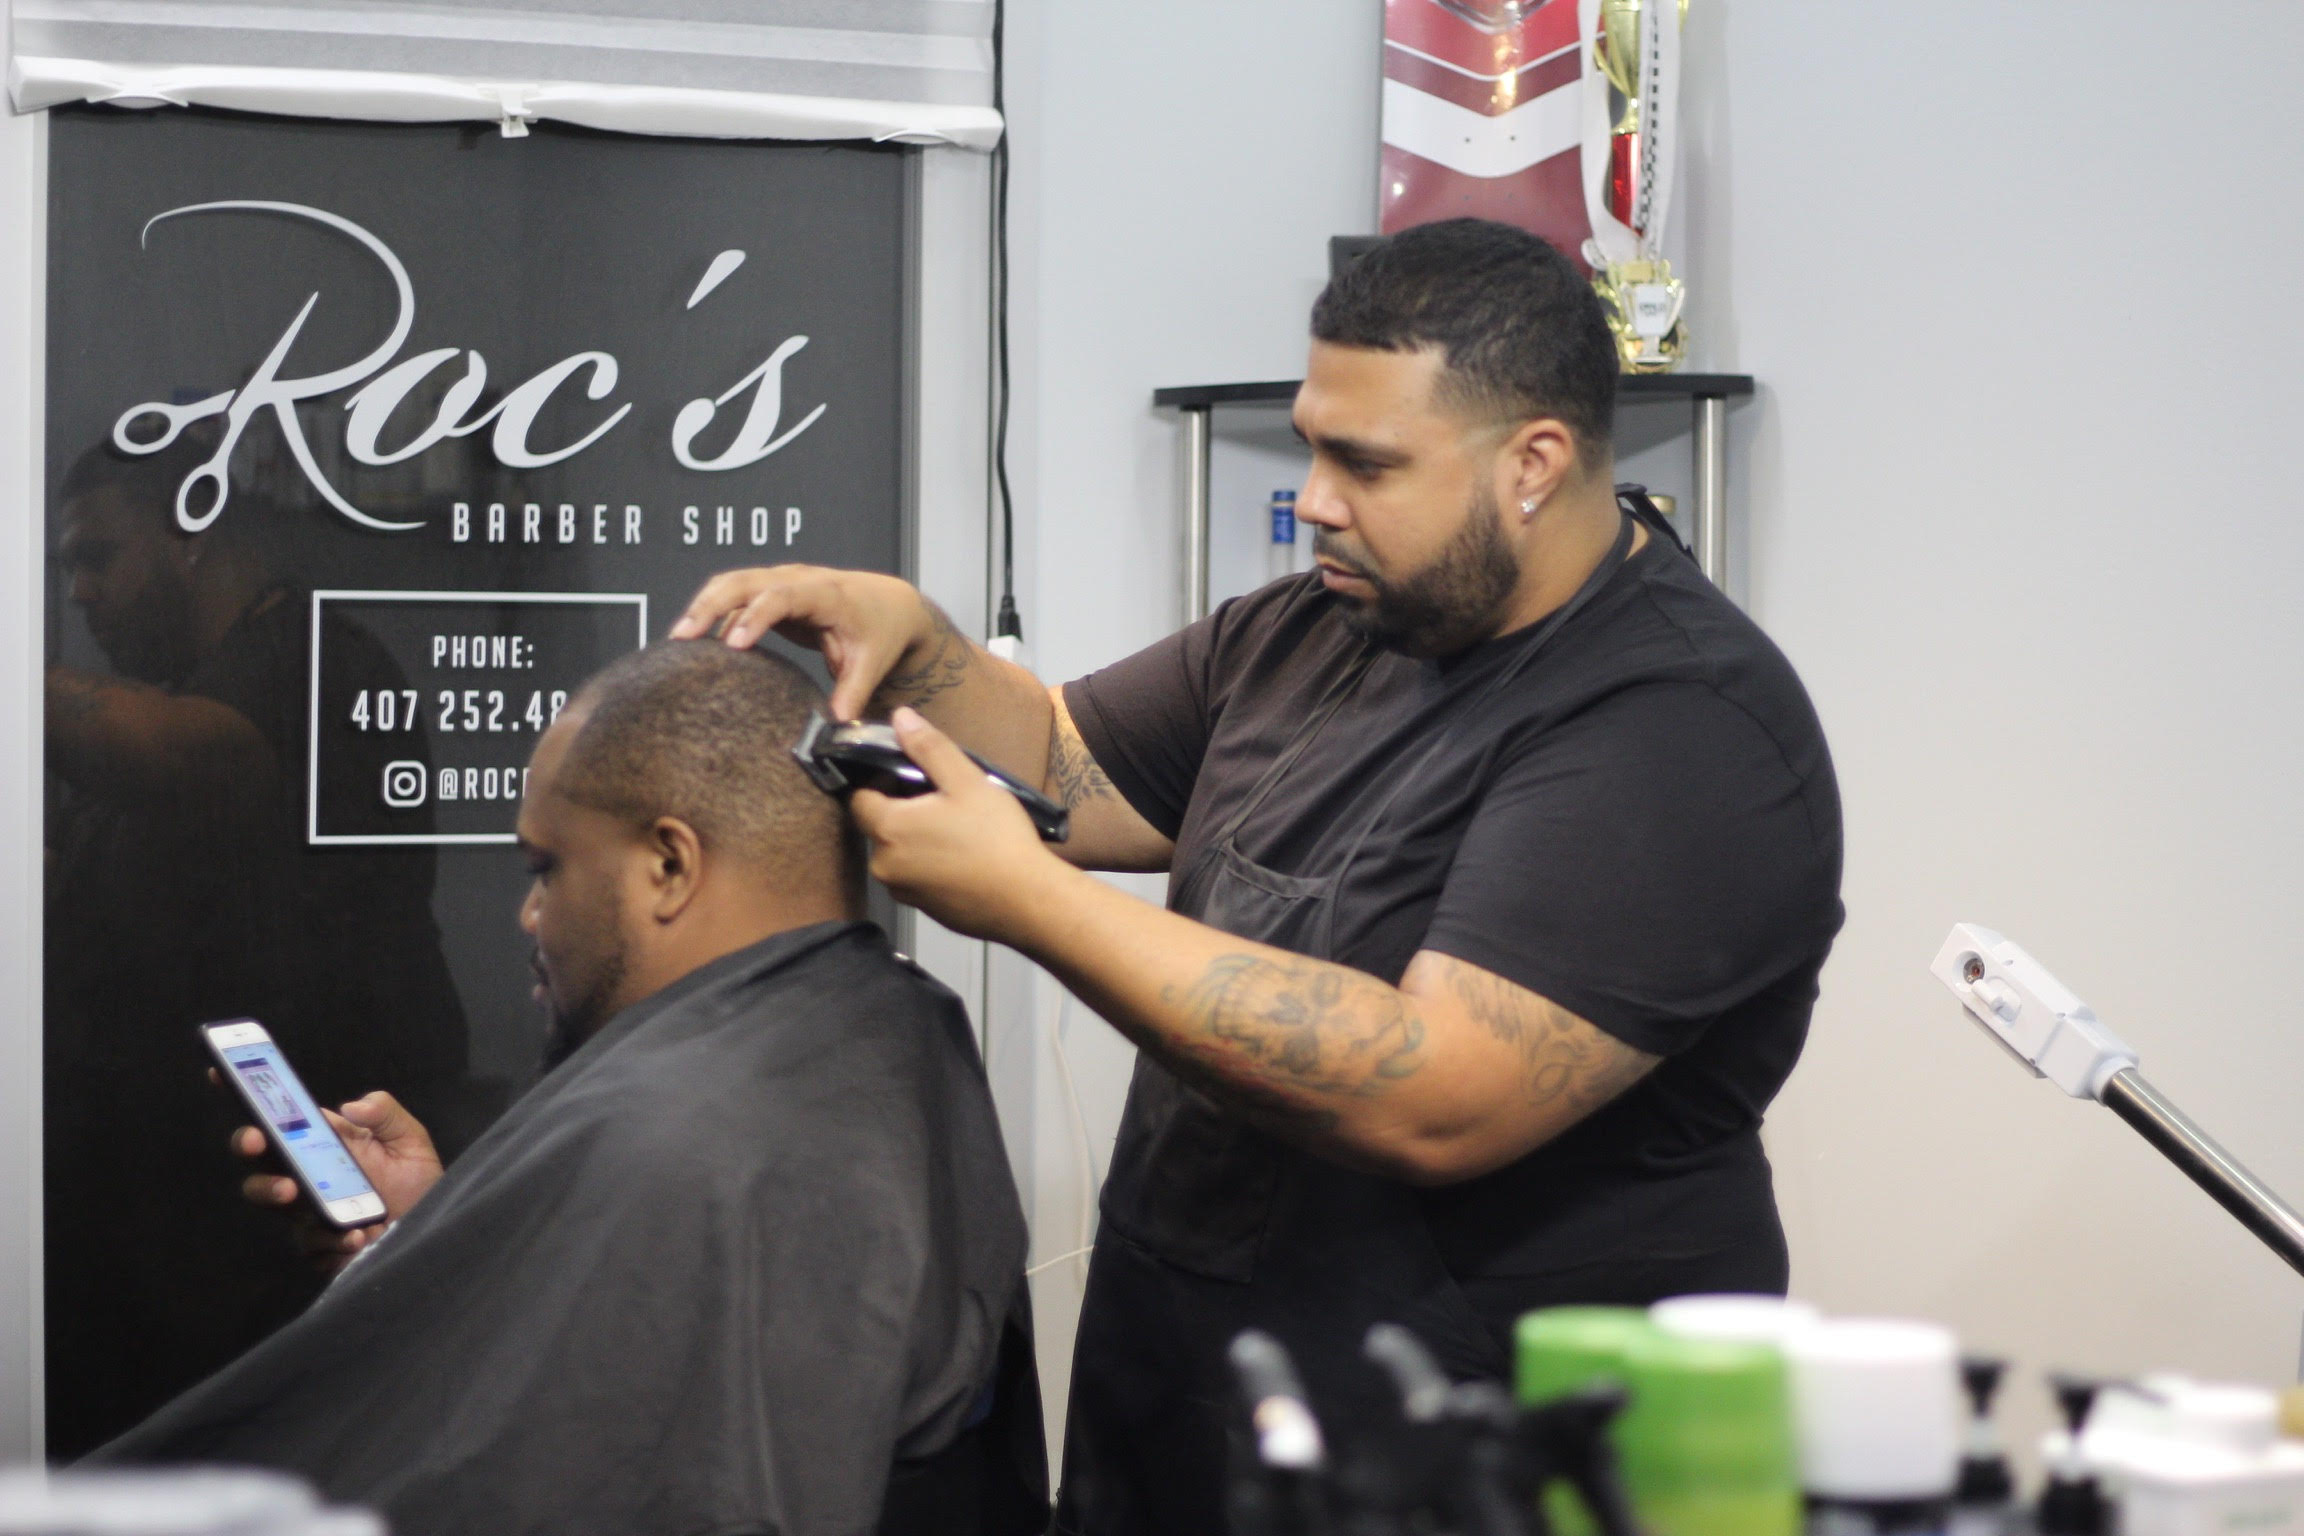 How One Solo Artist Barber Made the $12 Men's Cut a Thing of the Past